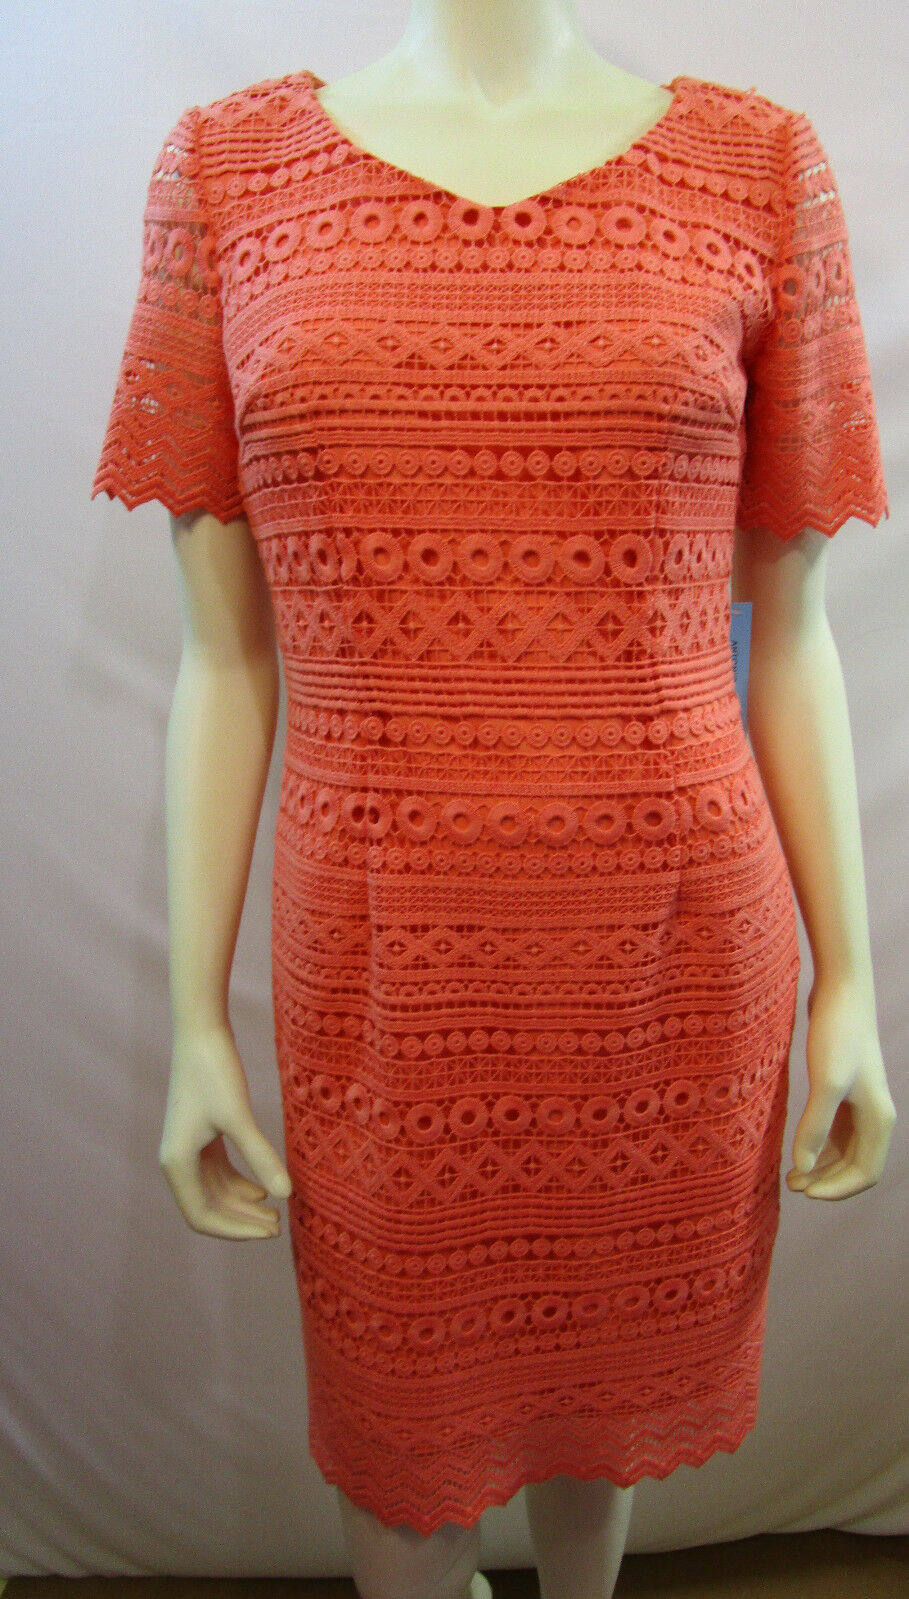 ANTONIO MELANI  SUNKISS LACE DRESS SIZE 4 NEW WITH TAG